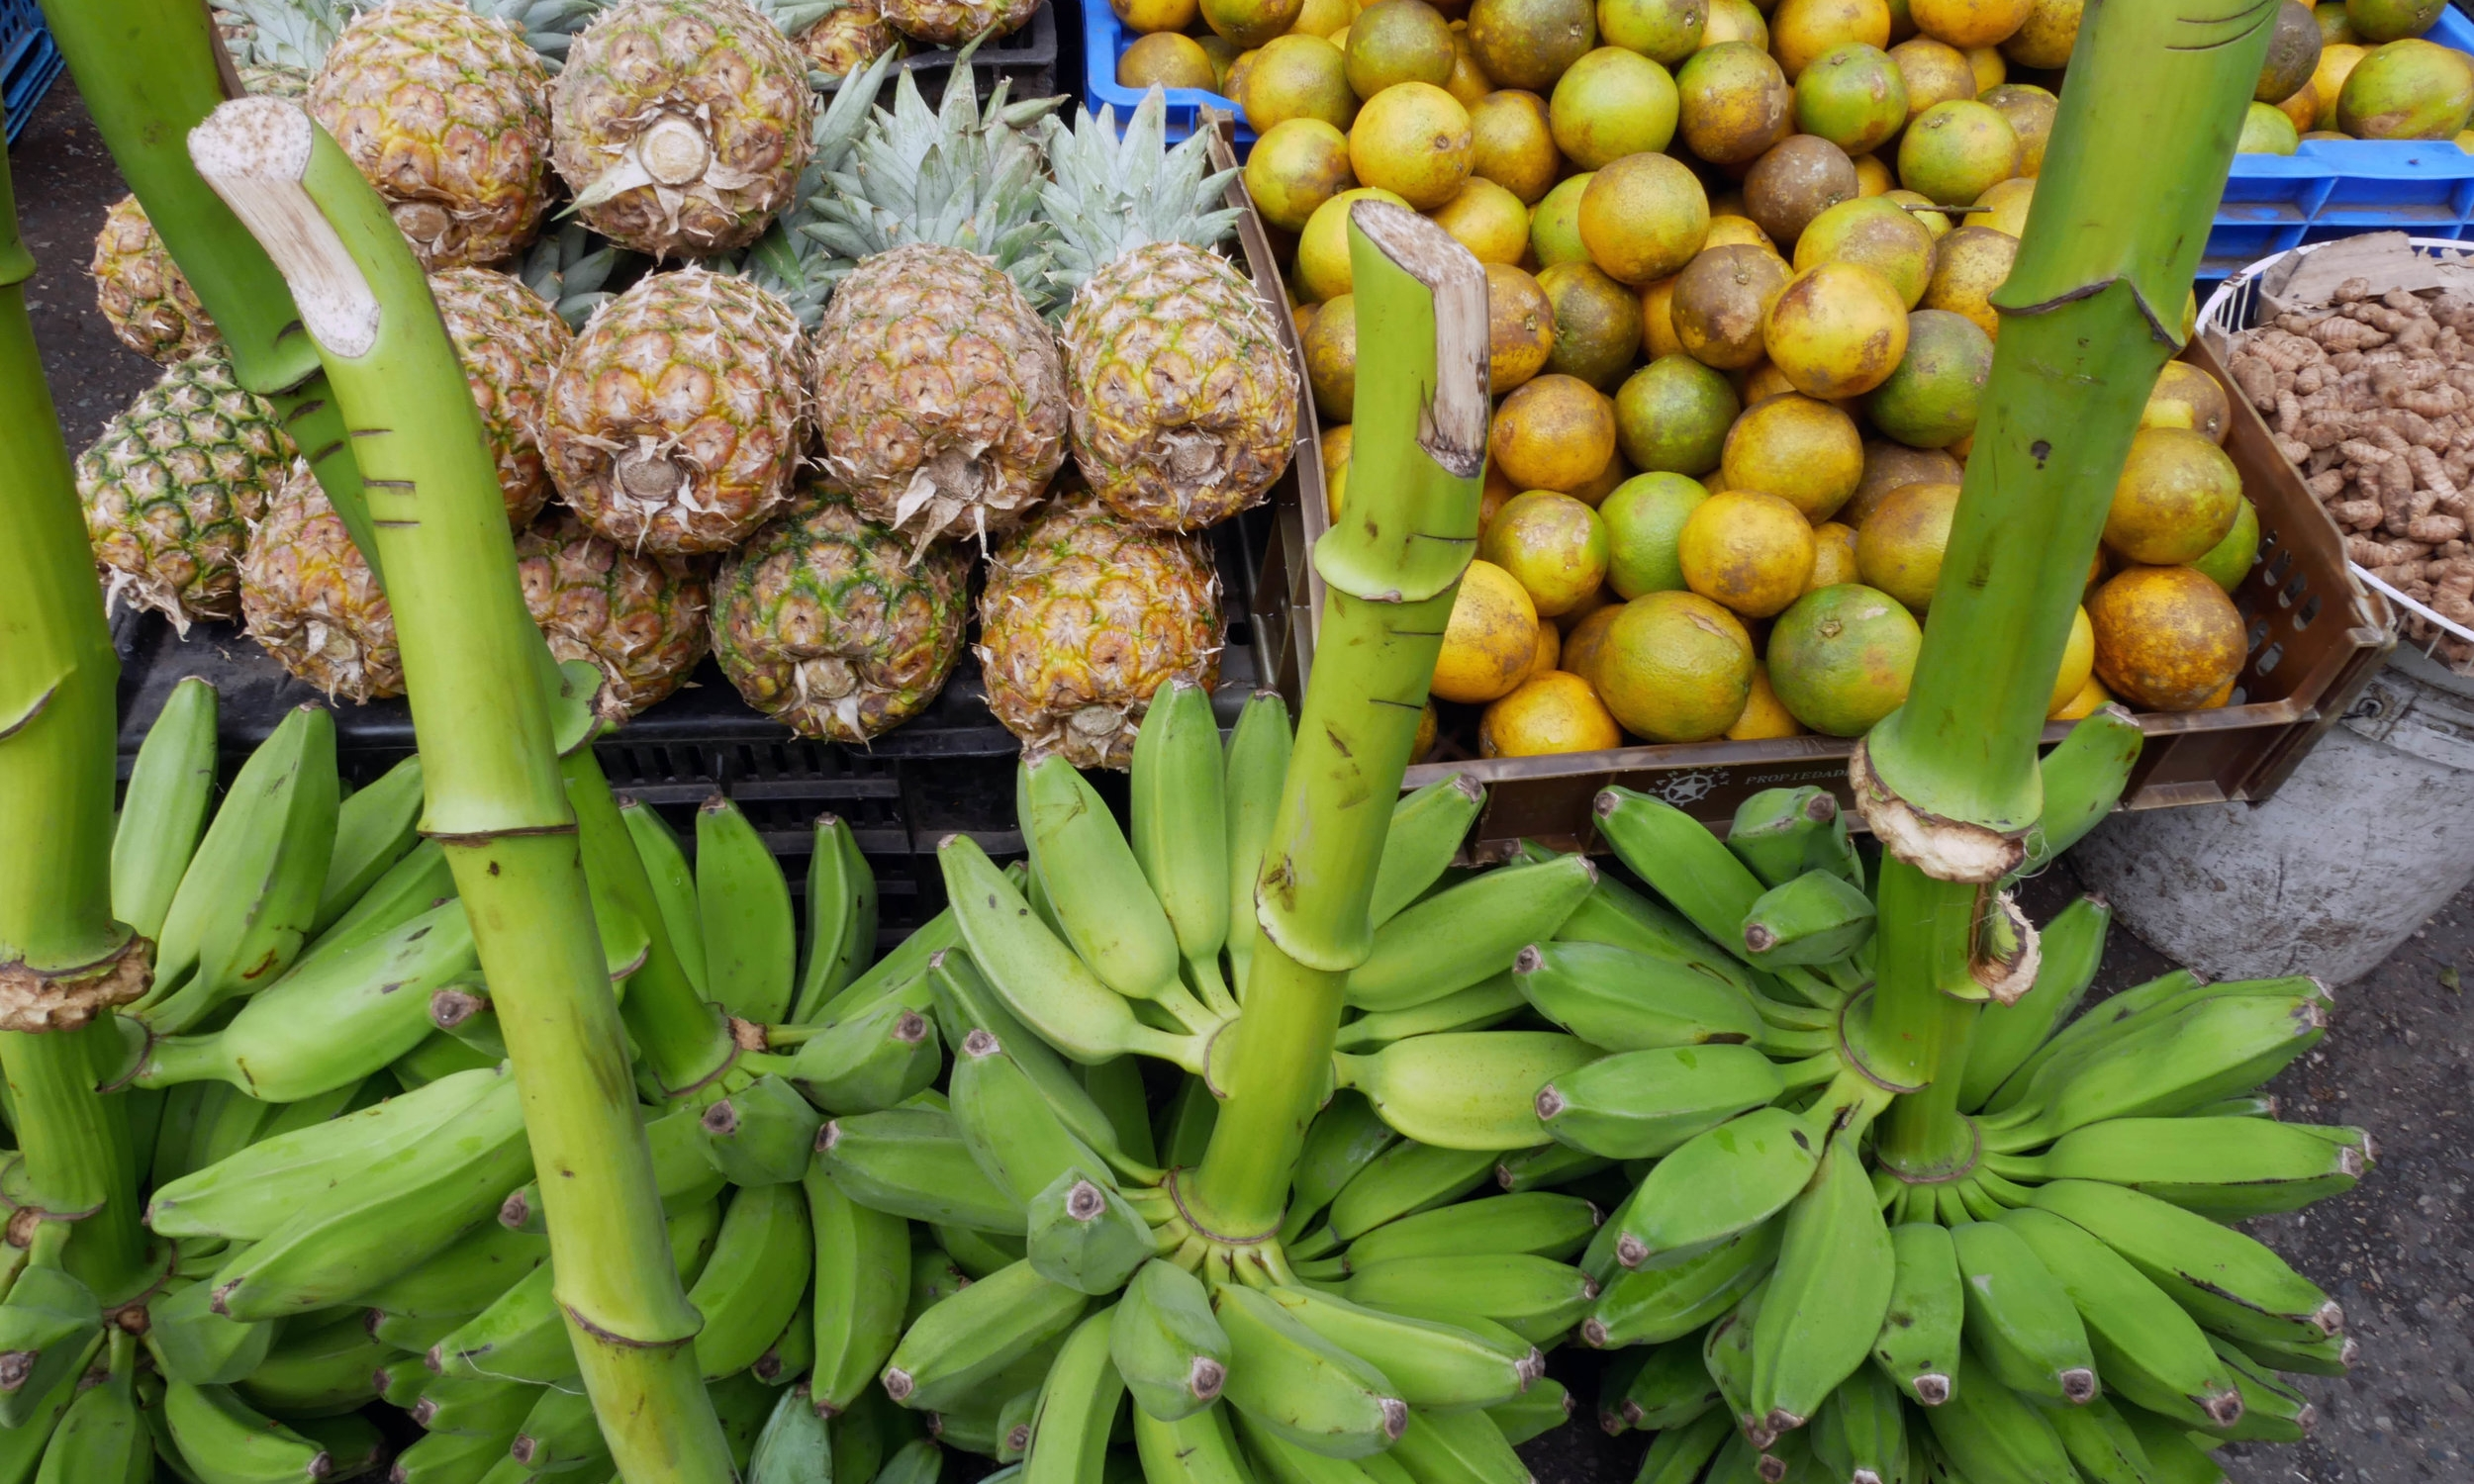 Bananas and pineapples, my favourites